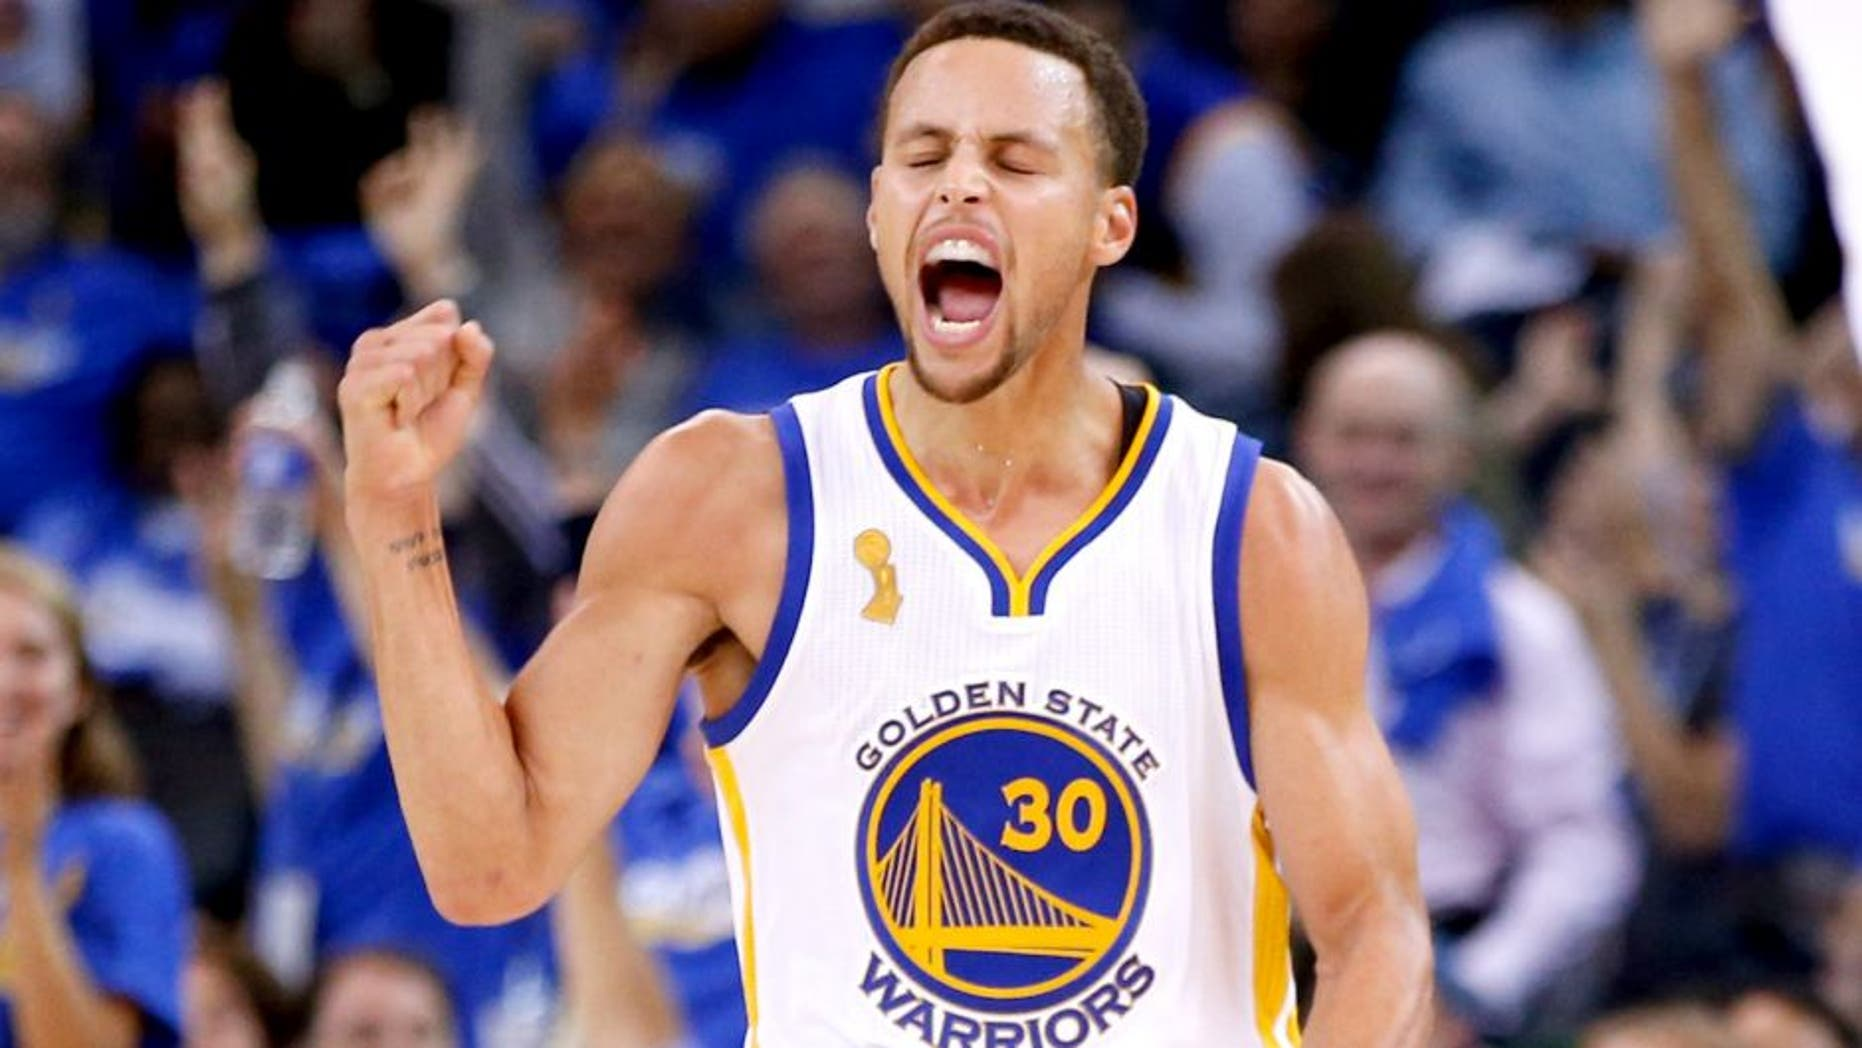 OAKLAND, CA - OCTOBER 27: Stephen Curry #30 of the Golden State Warriors celebrates after a three point basket against the New Orleans Pelicans during the NBA season opener at ORACLE Arena on October 27, 2015 in Oakland, California. NOTE TO USER: User expressly acknowledges and agrees that, by downloading and or using this photograph, User is consenting to the terms and conditions of the Getty Images License Agreement. (Photo by Ezra Shaw/Getty Images)